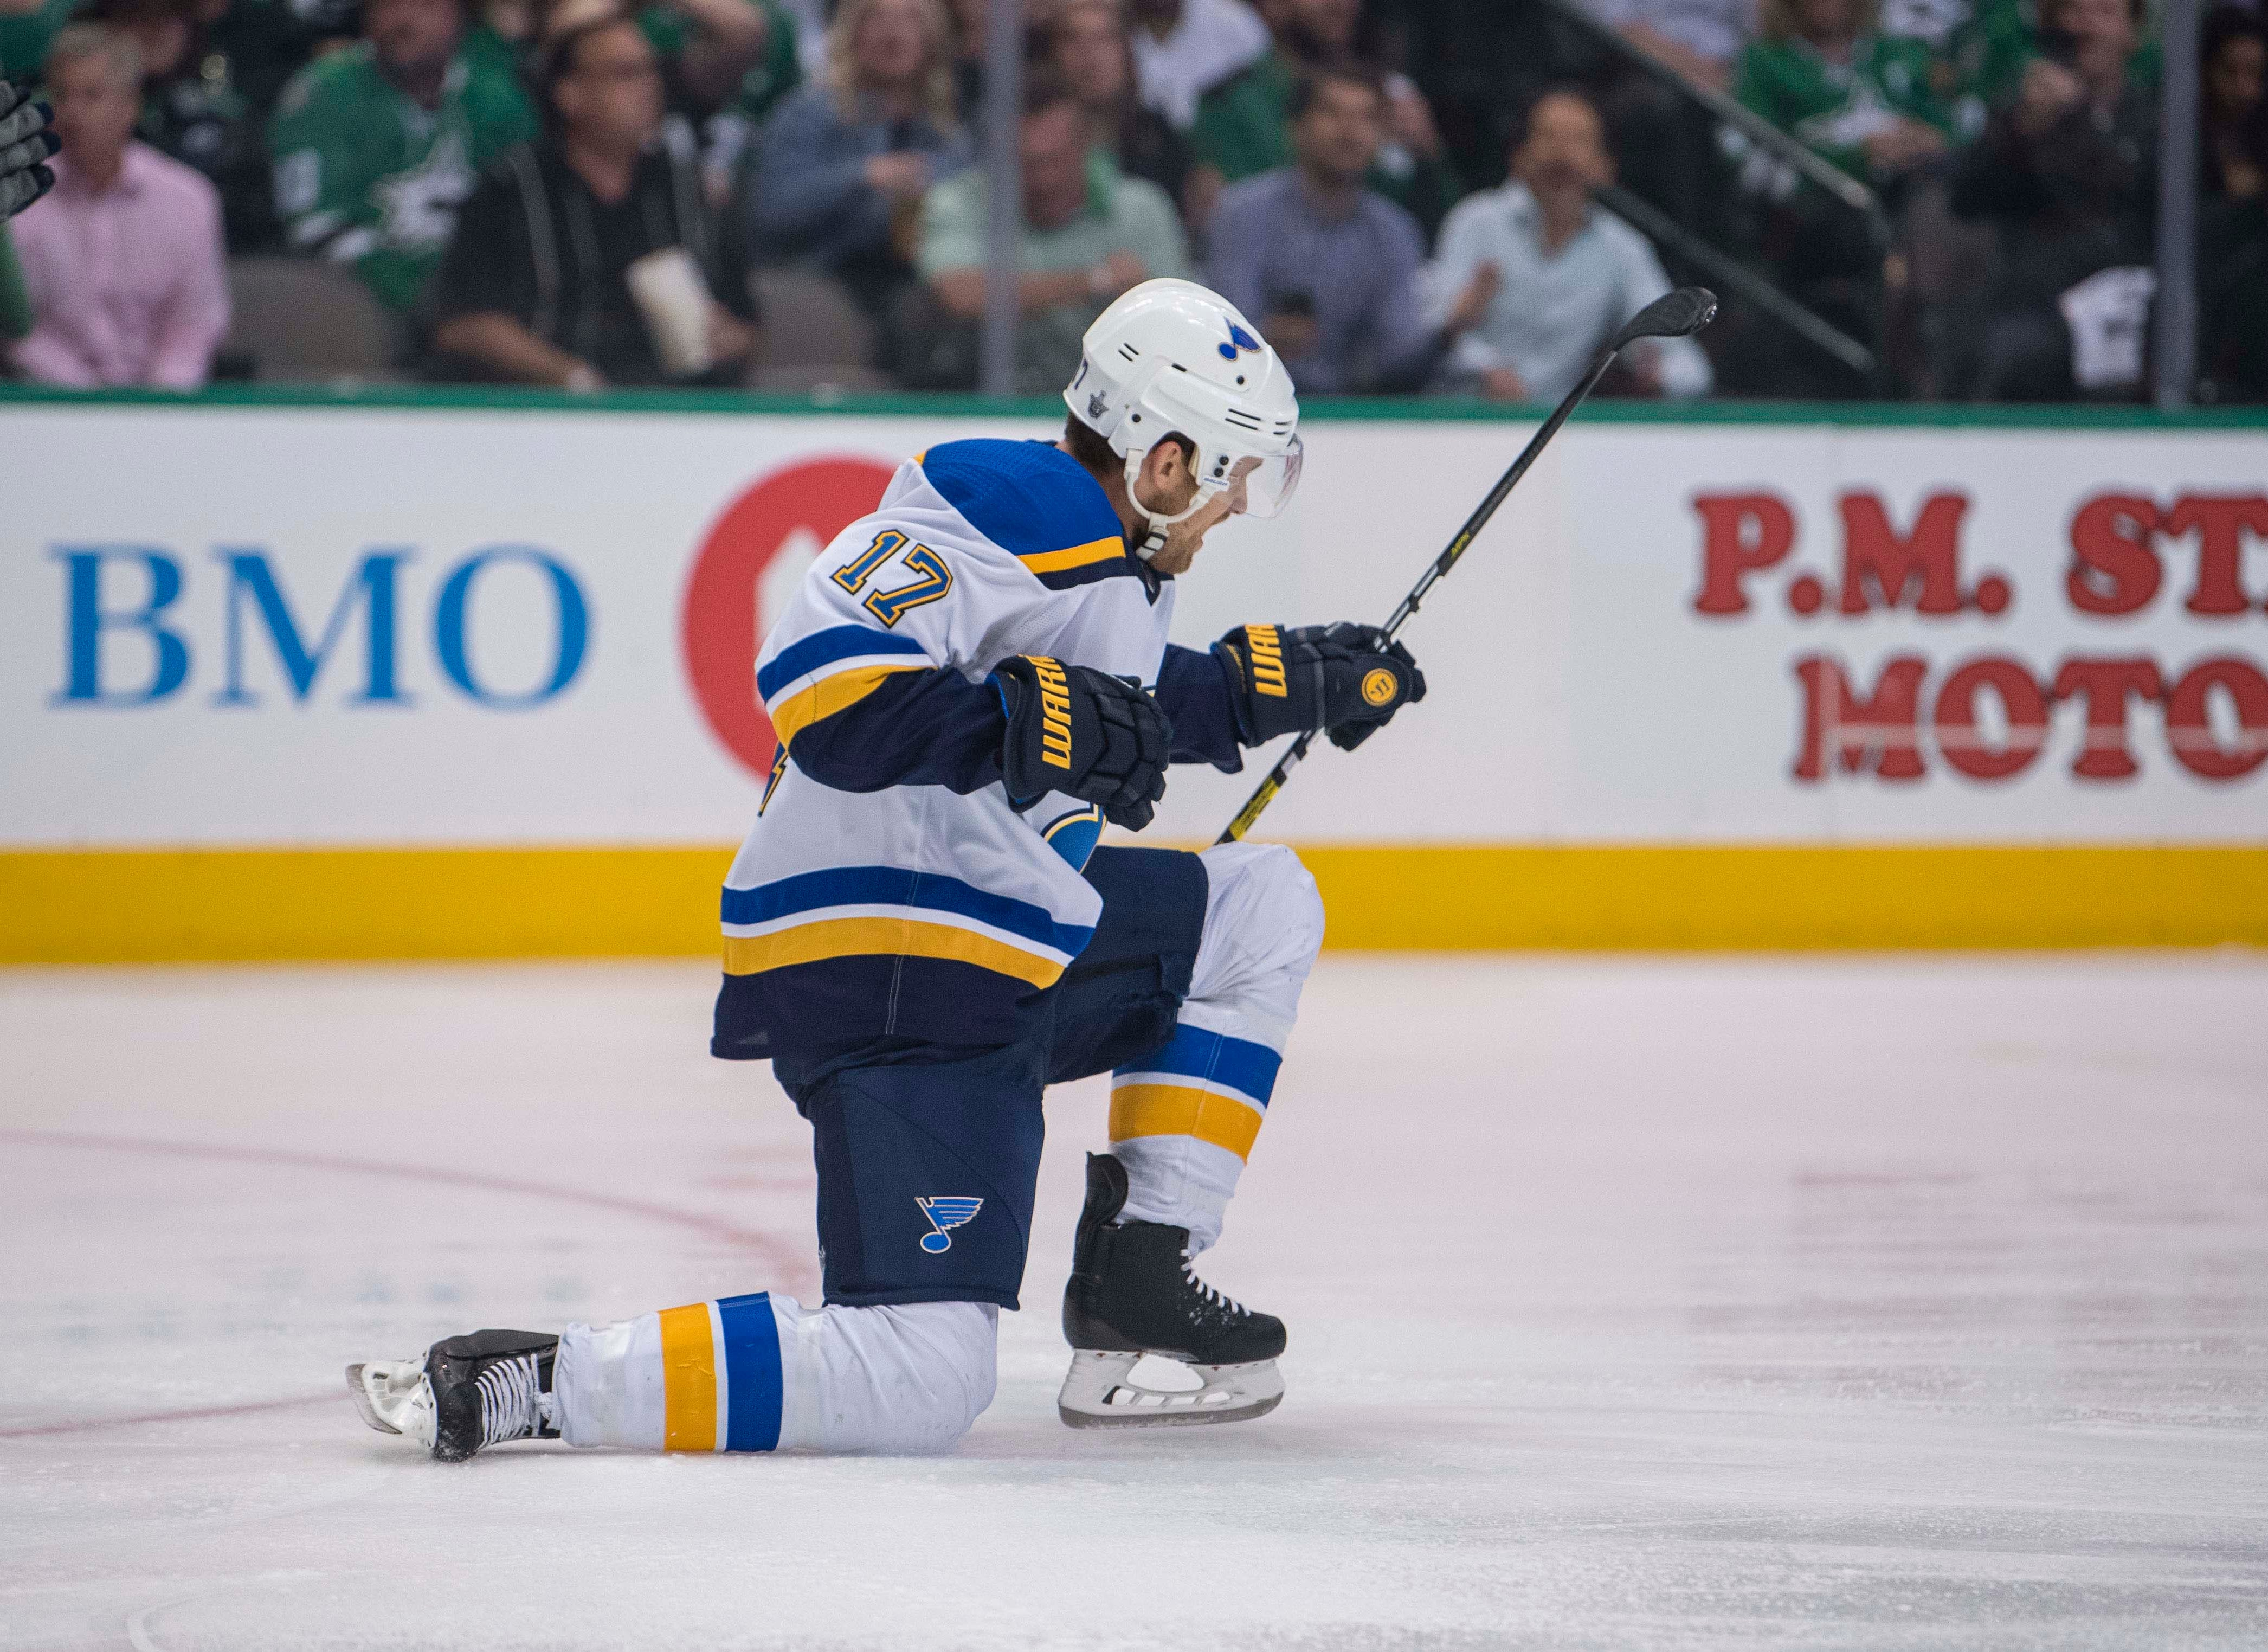 Second round: St. Louis Blues LW Jaden Schwartz (17) celebrates a first-period goal against the Stars during Game 3 in Dallas. The Blues edged the Stars 4-3 to take a 2-1 series lead.